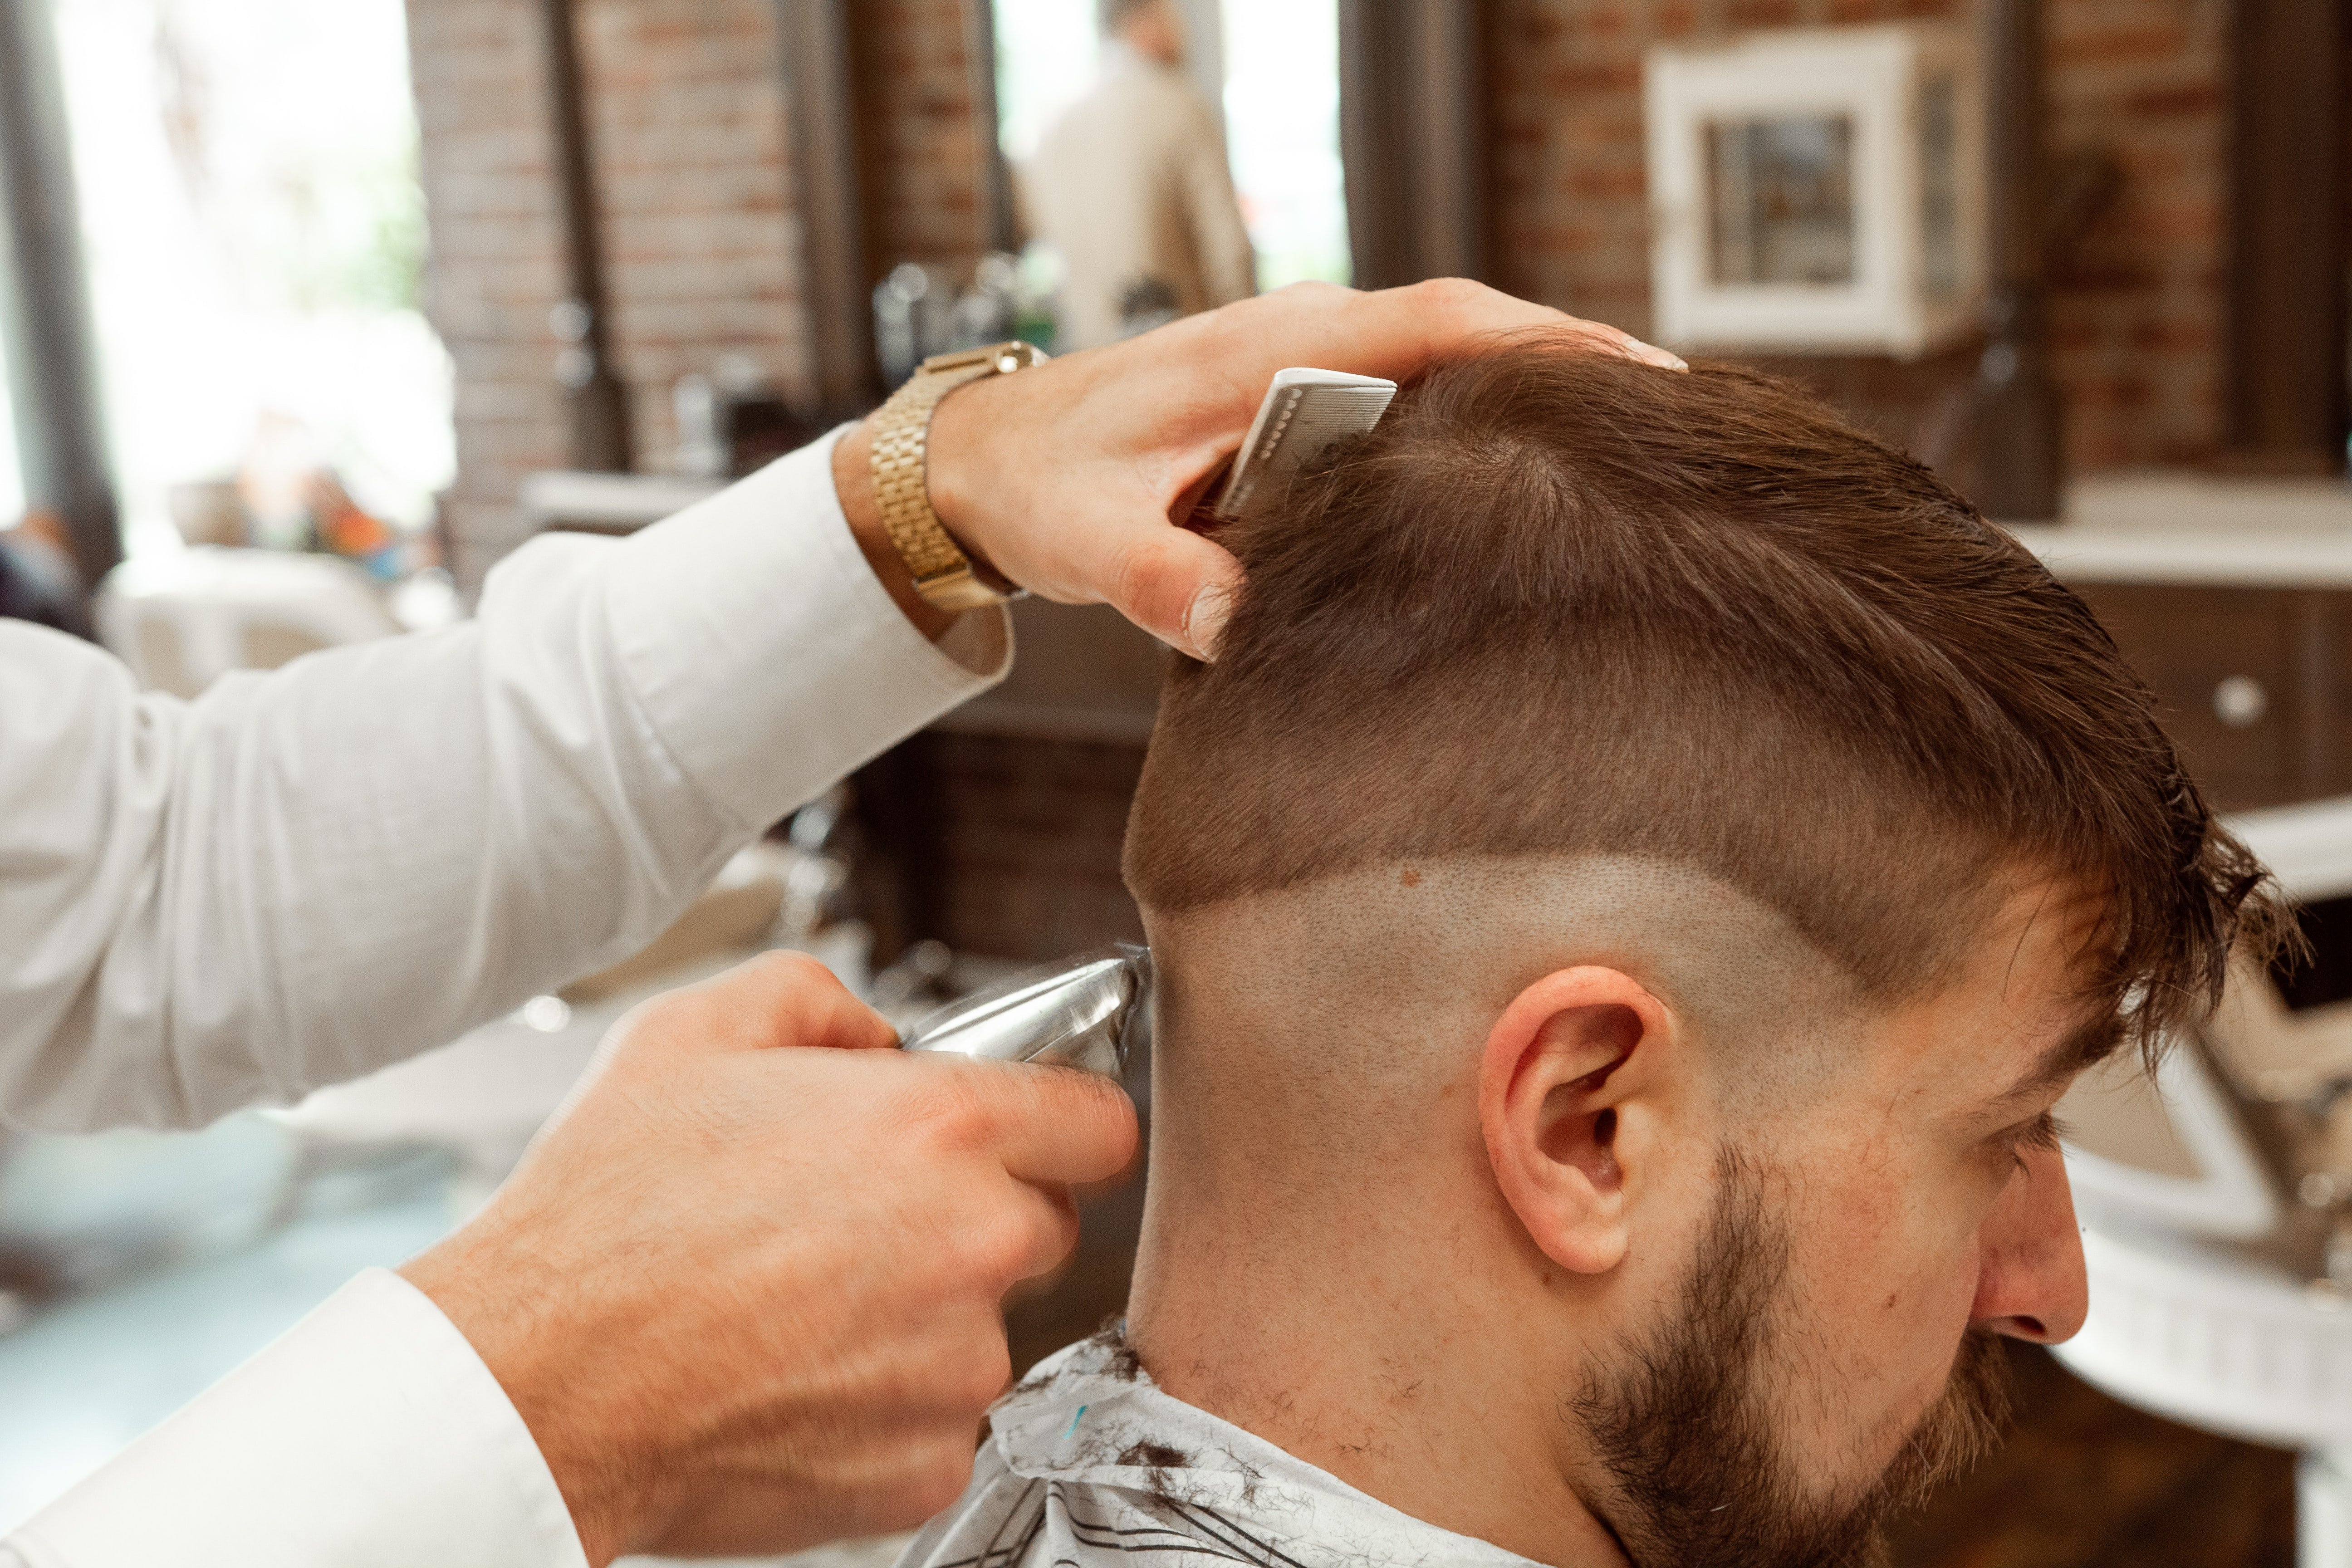 Person getting his hair shaved in a salon   Photo: Unsplash